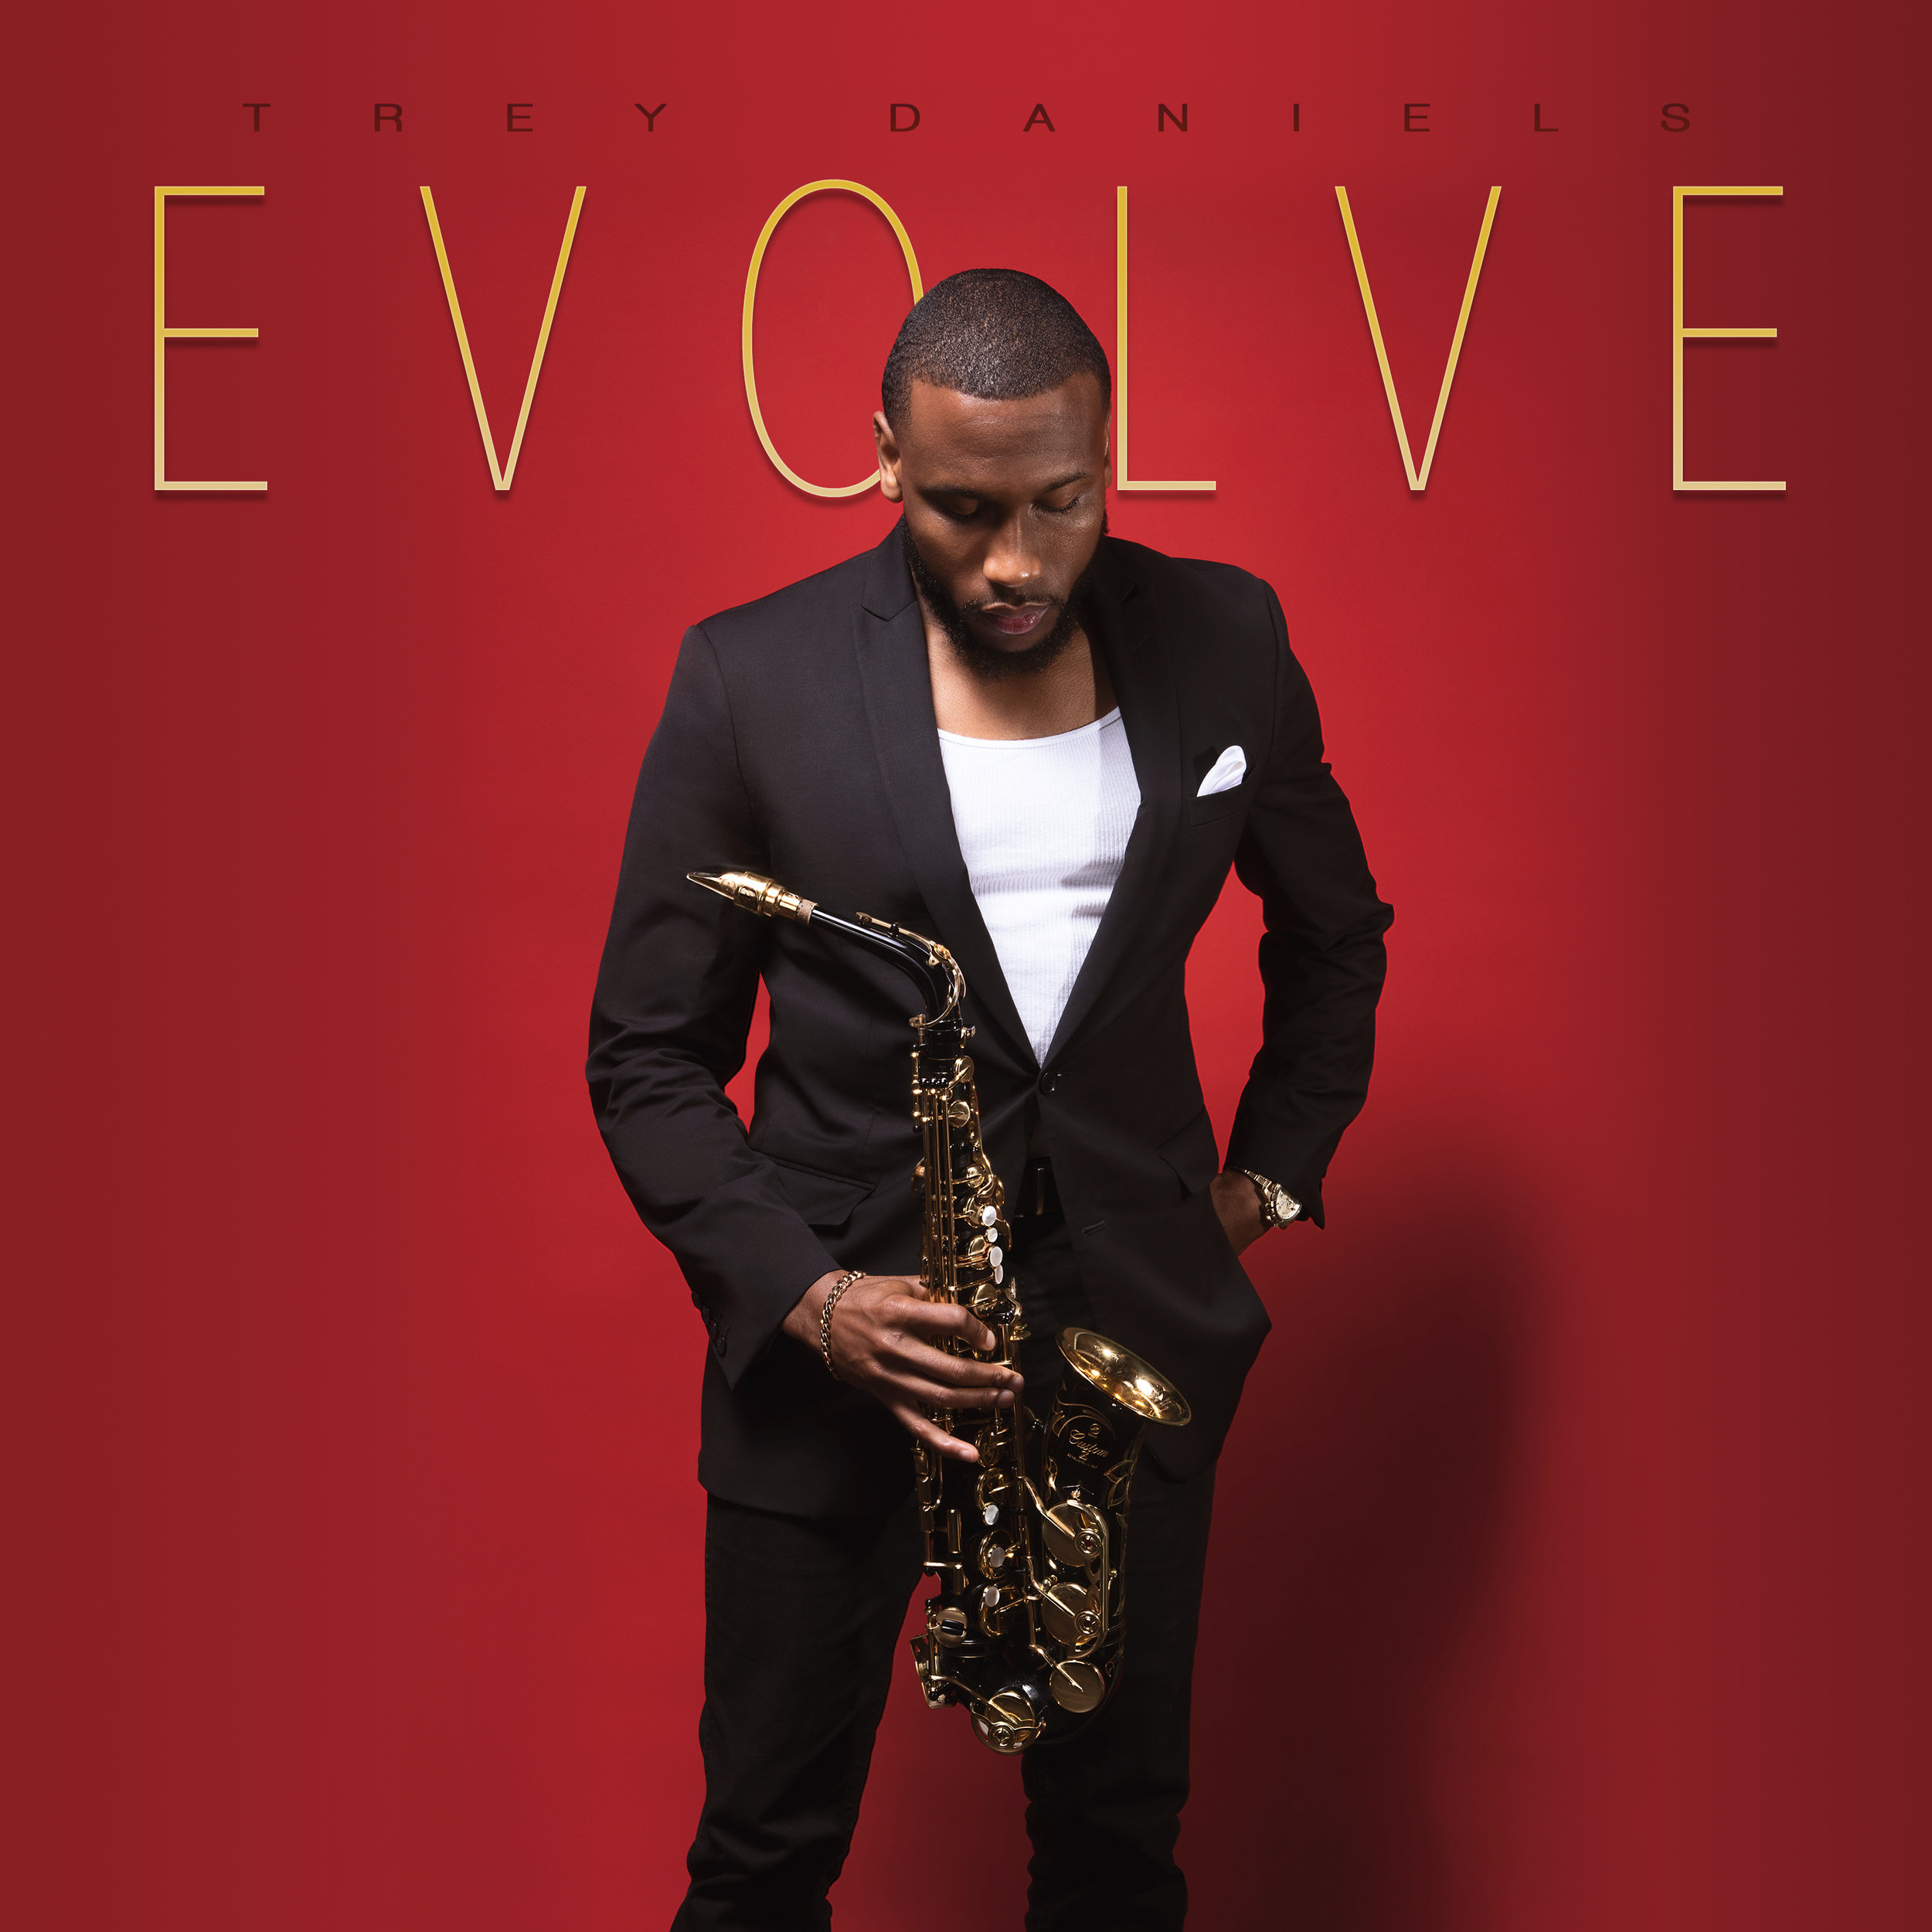 EVOLVE Cover Hi-Rez.jpg